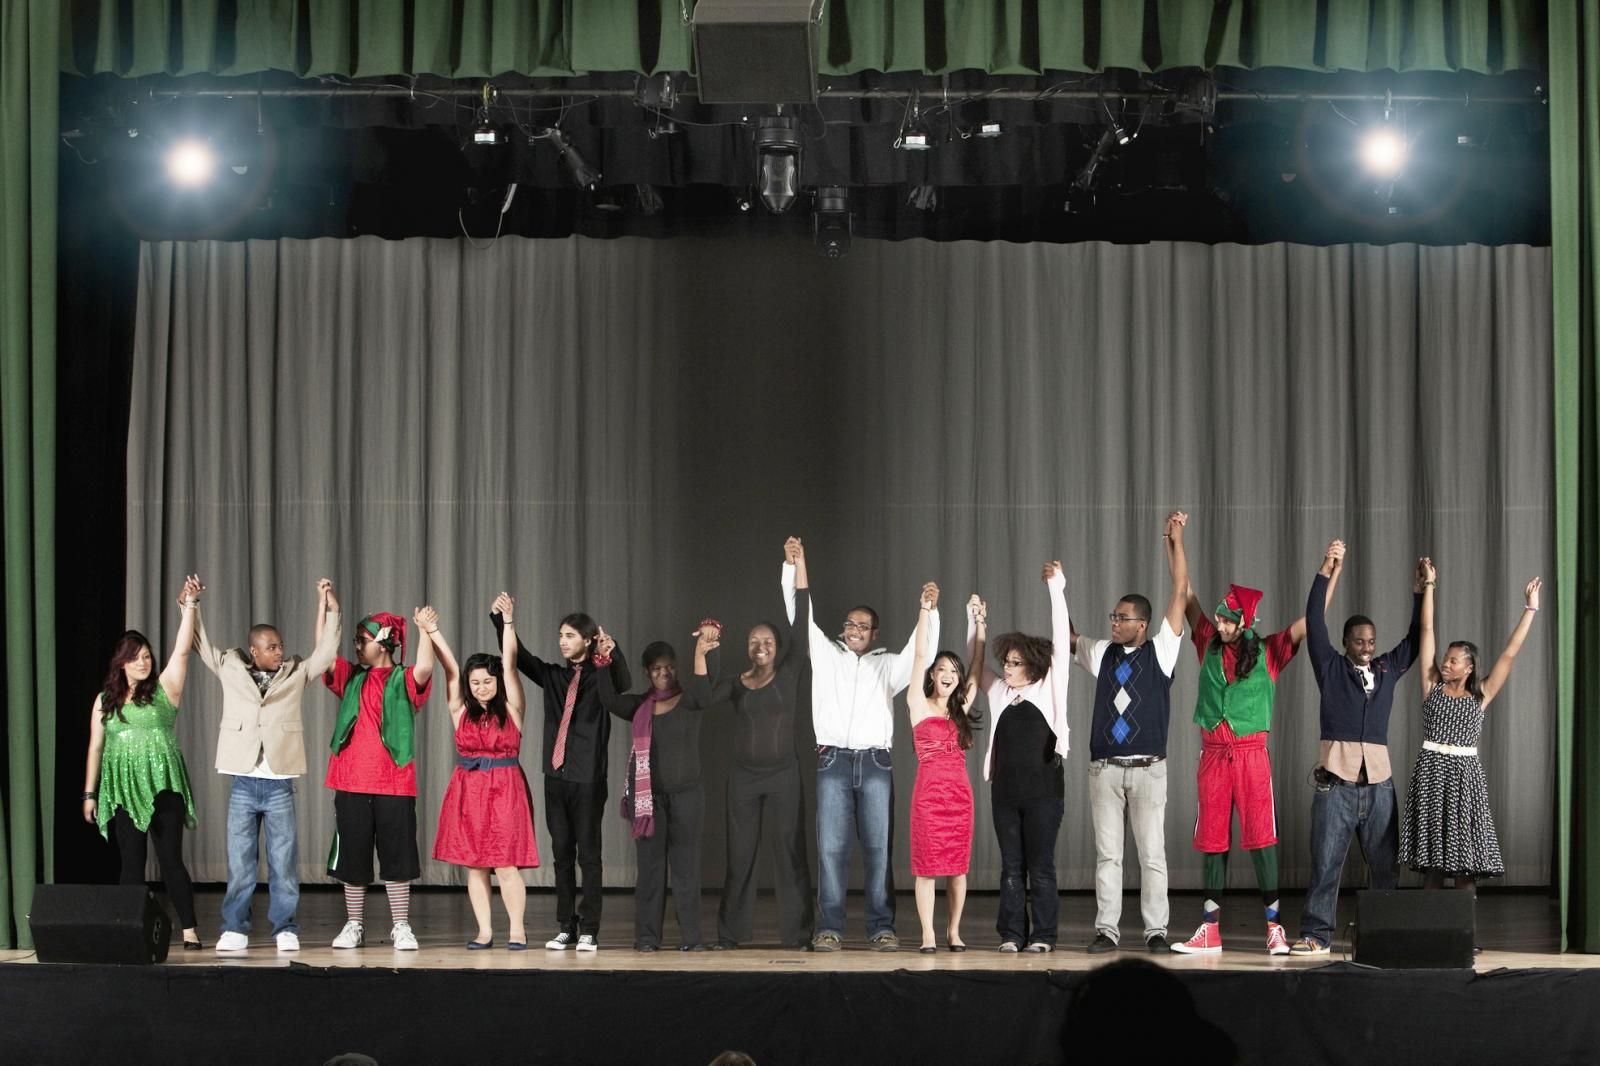 Students bowing on high school stage